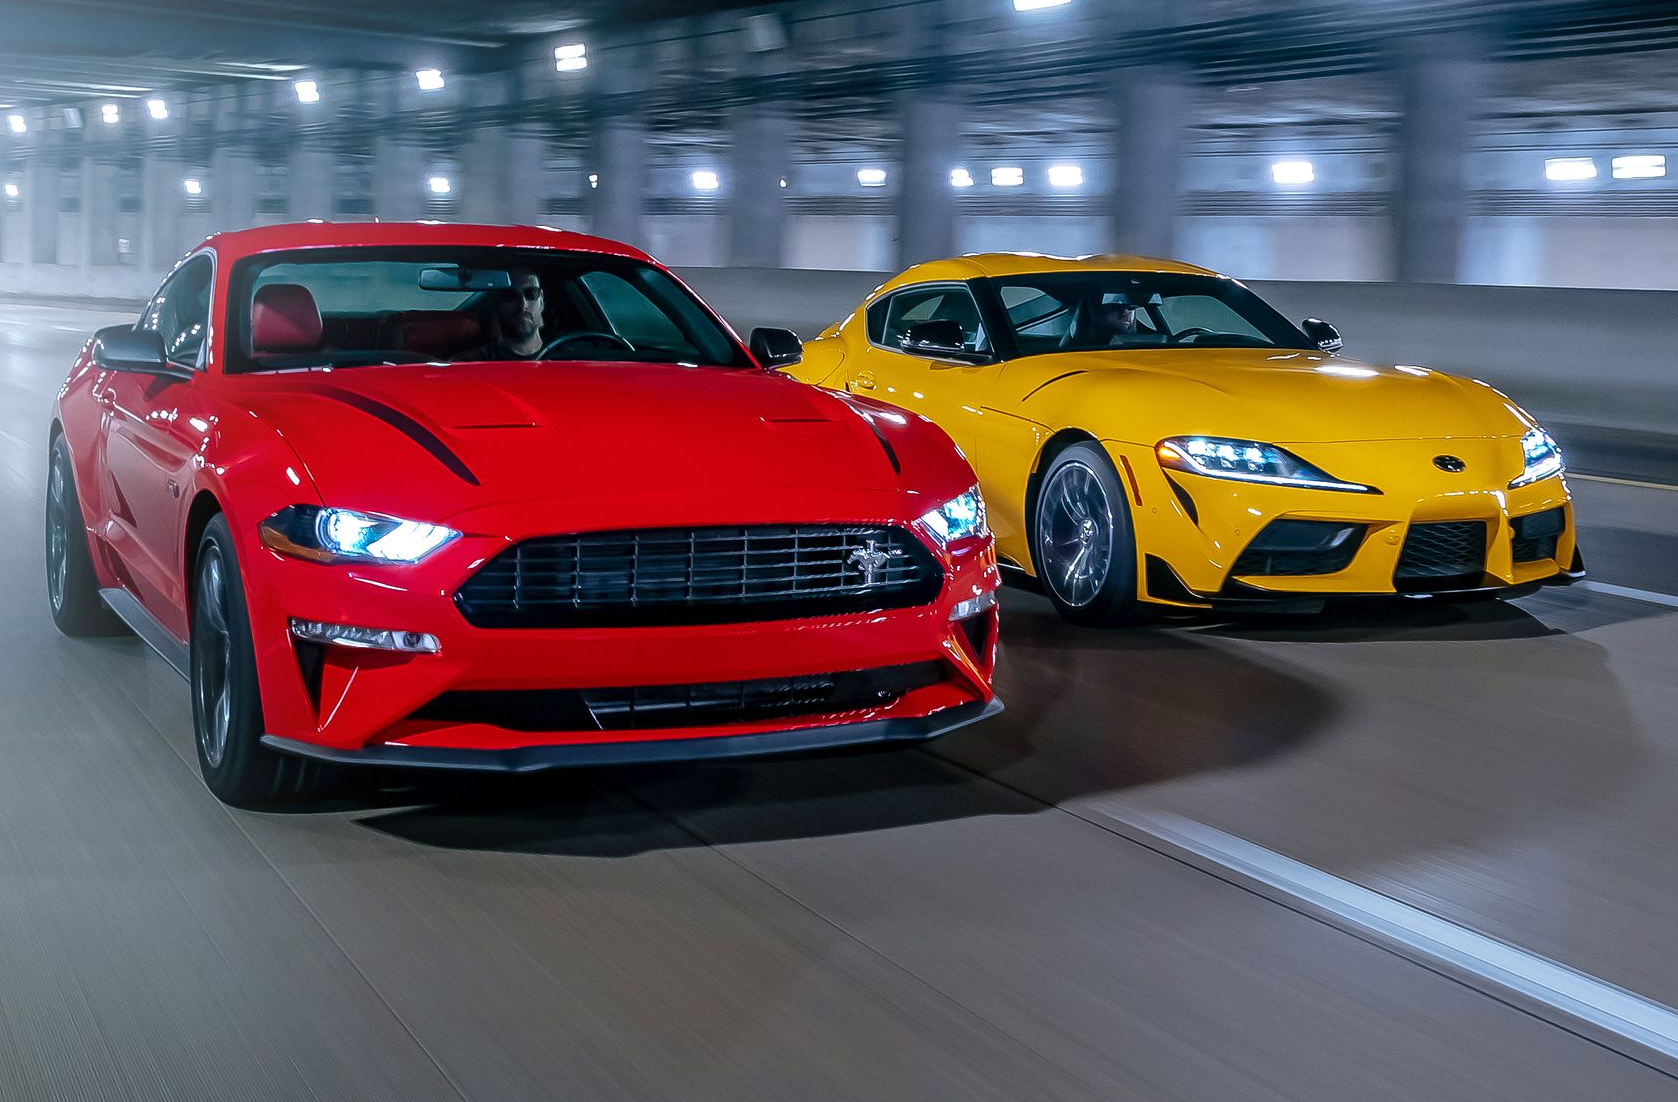 Tested: 2020 Ford Mustang 2.3L vs. 2021 Toyota Supra 2.0